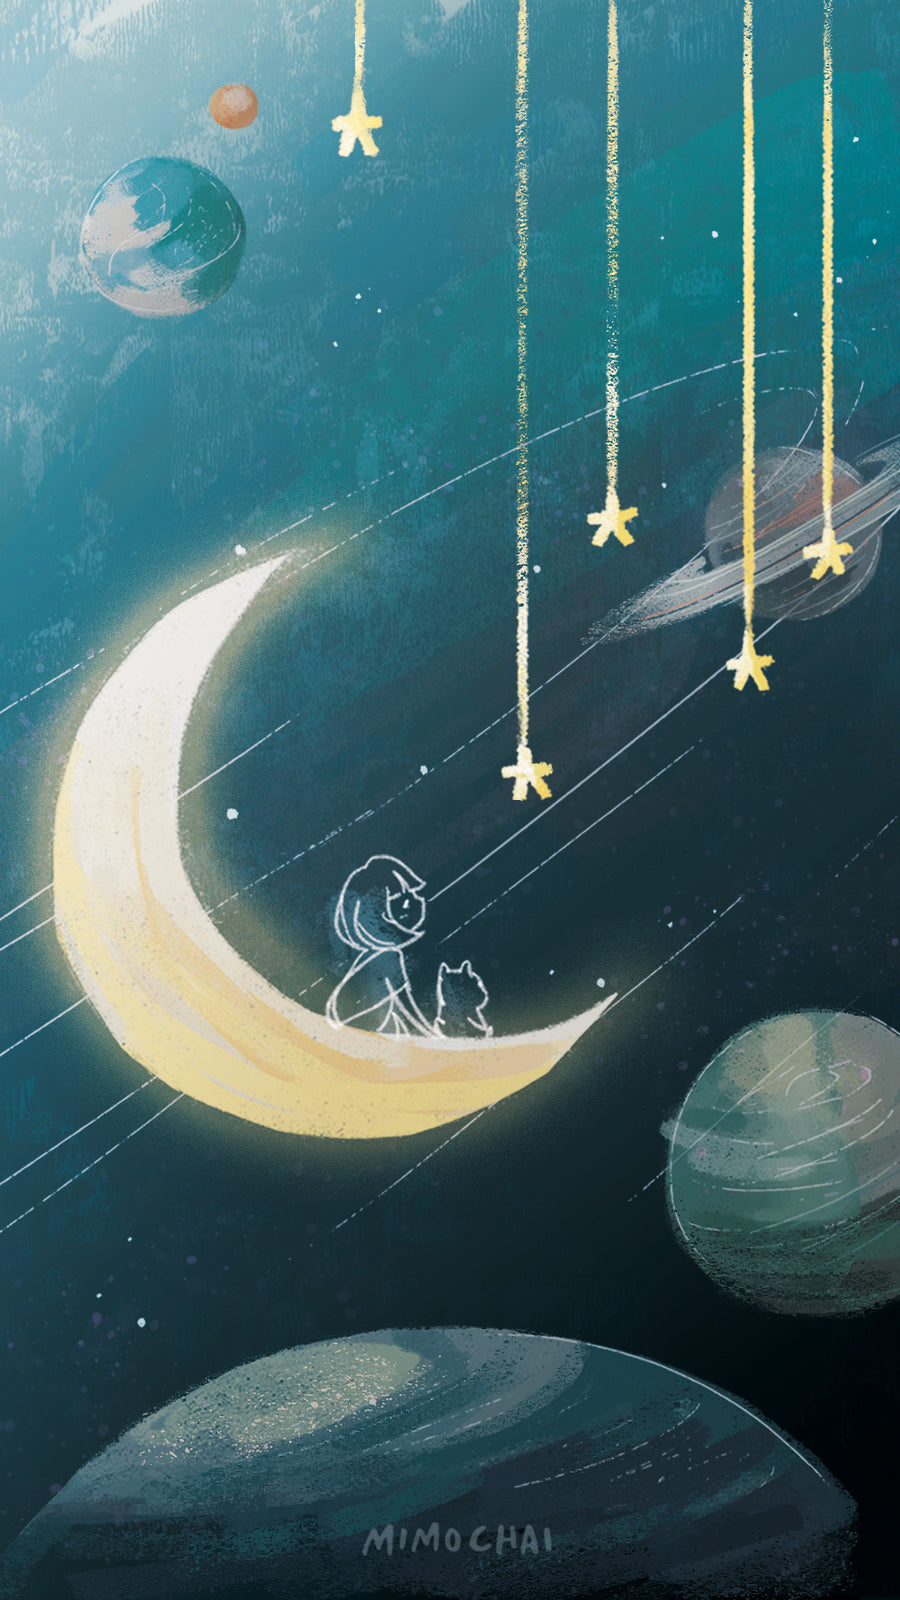 Free Emme & Hamstarcat Whimsical Space Mobile Wallpaper for iPhone example